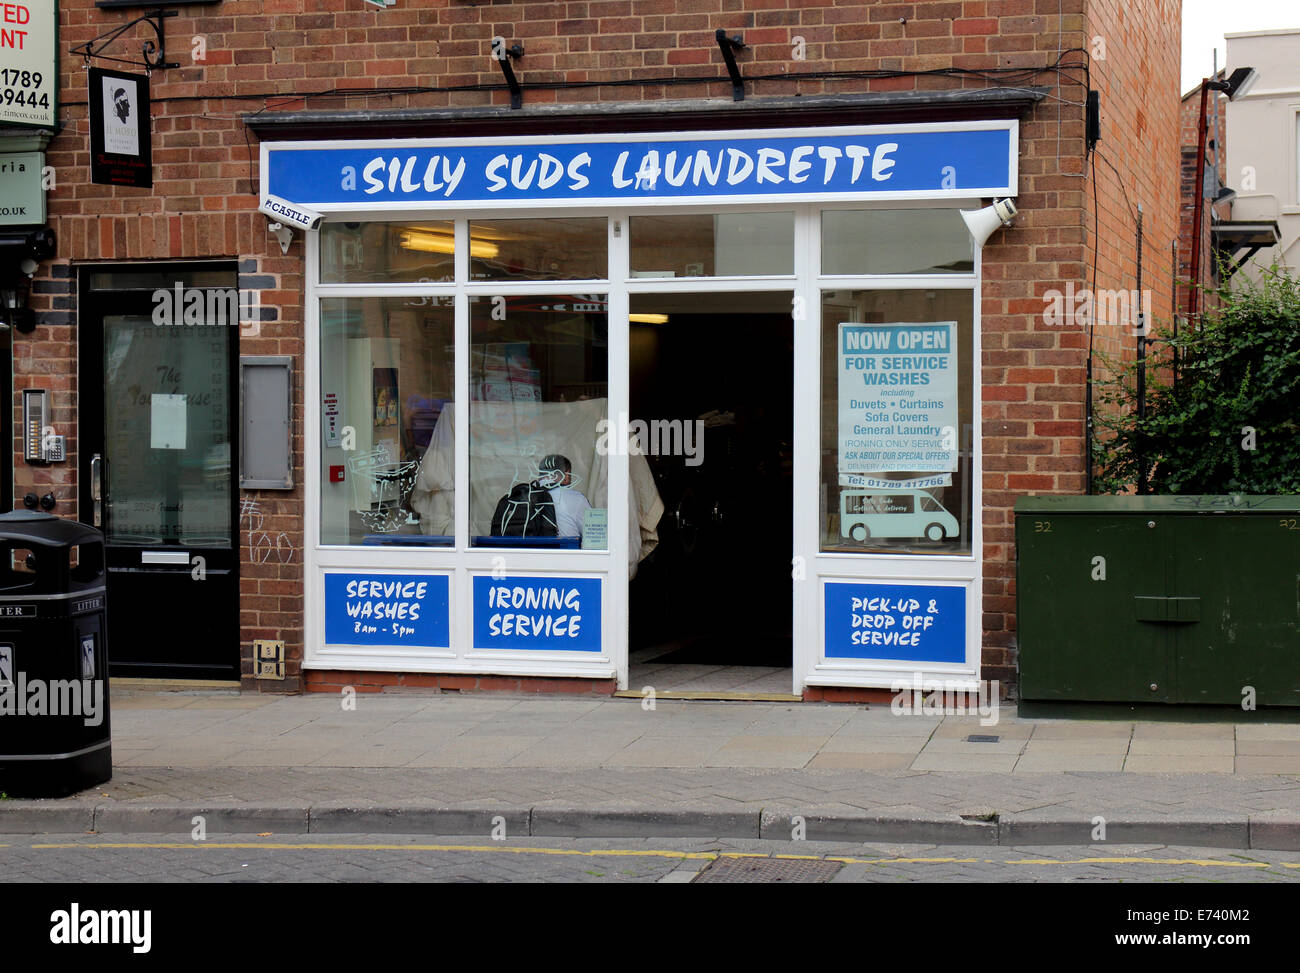 Silly Suds laundrette, Stratford-upon-Avon, Warwickshire, UK - Stock Image